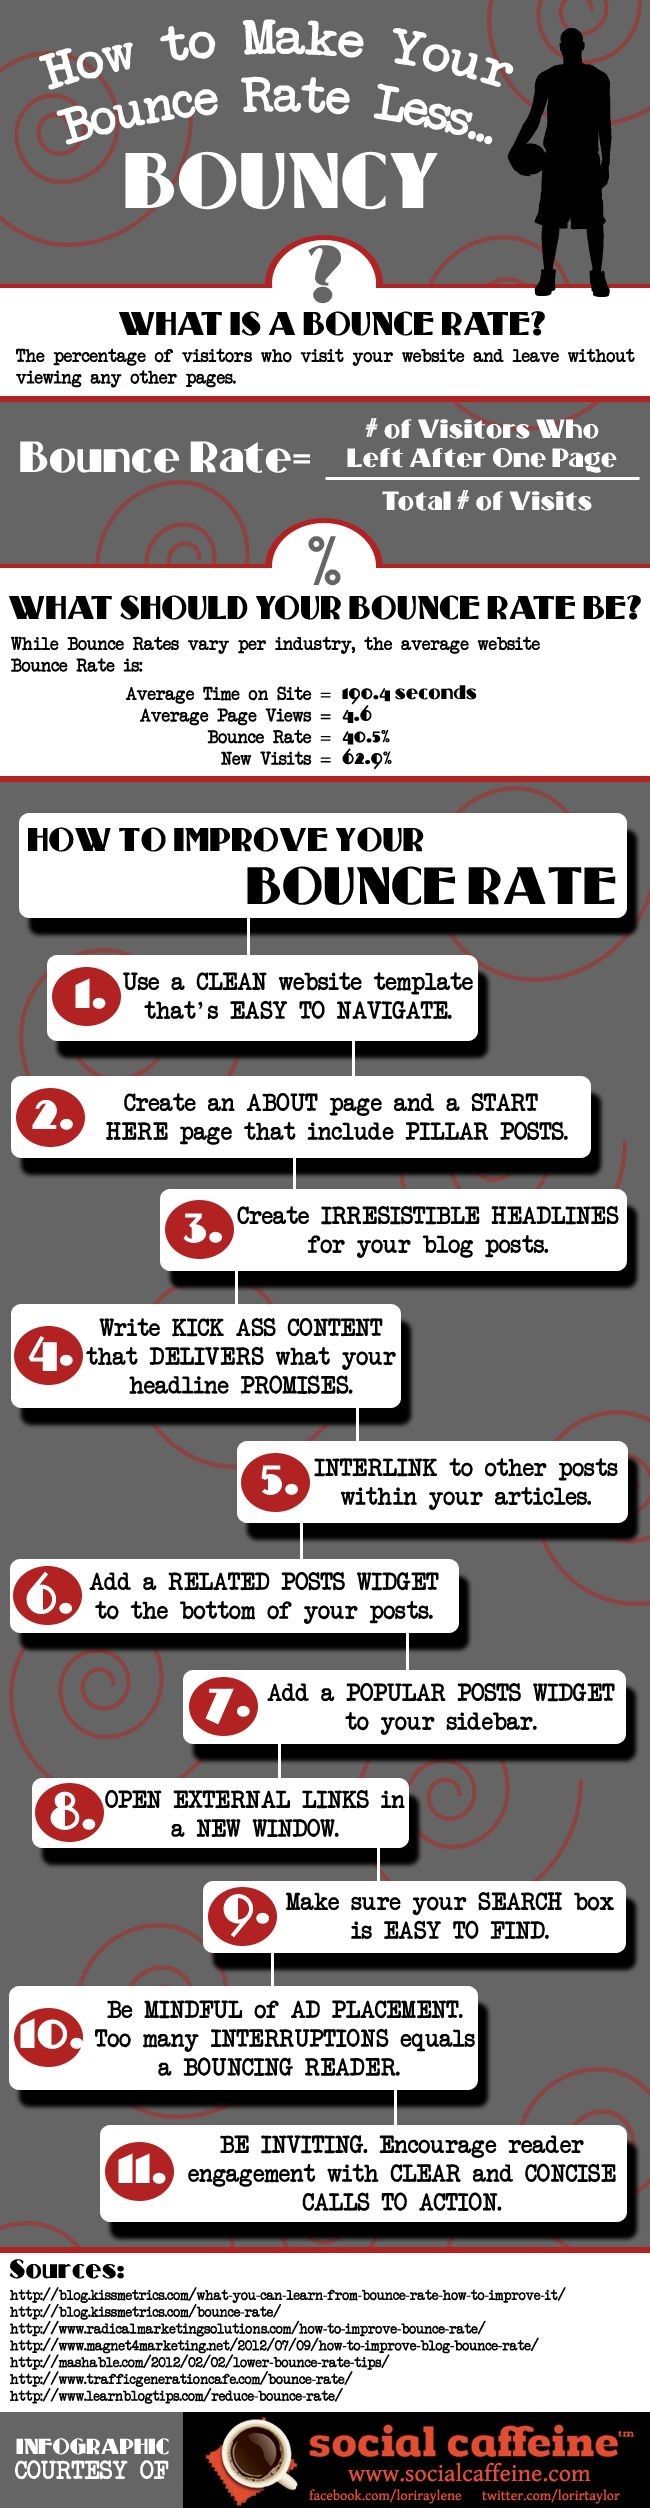 How to make your website's bounce rate less...bouncy. #infographic